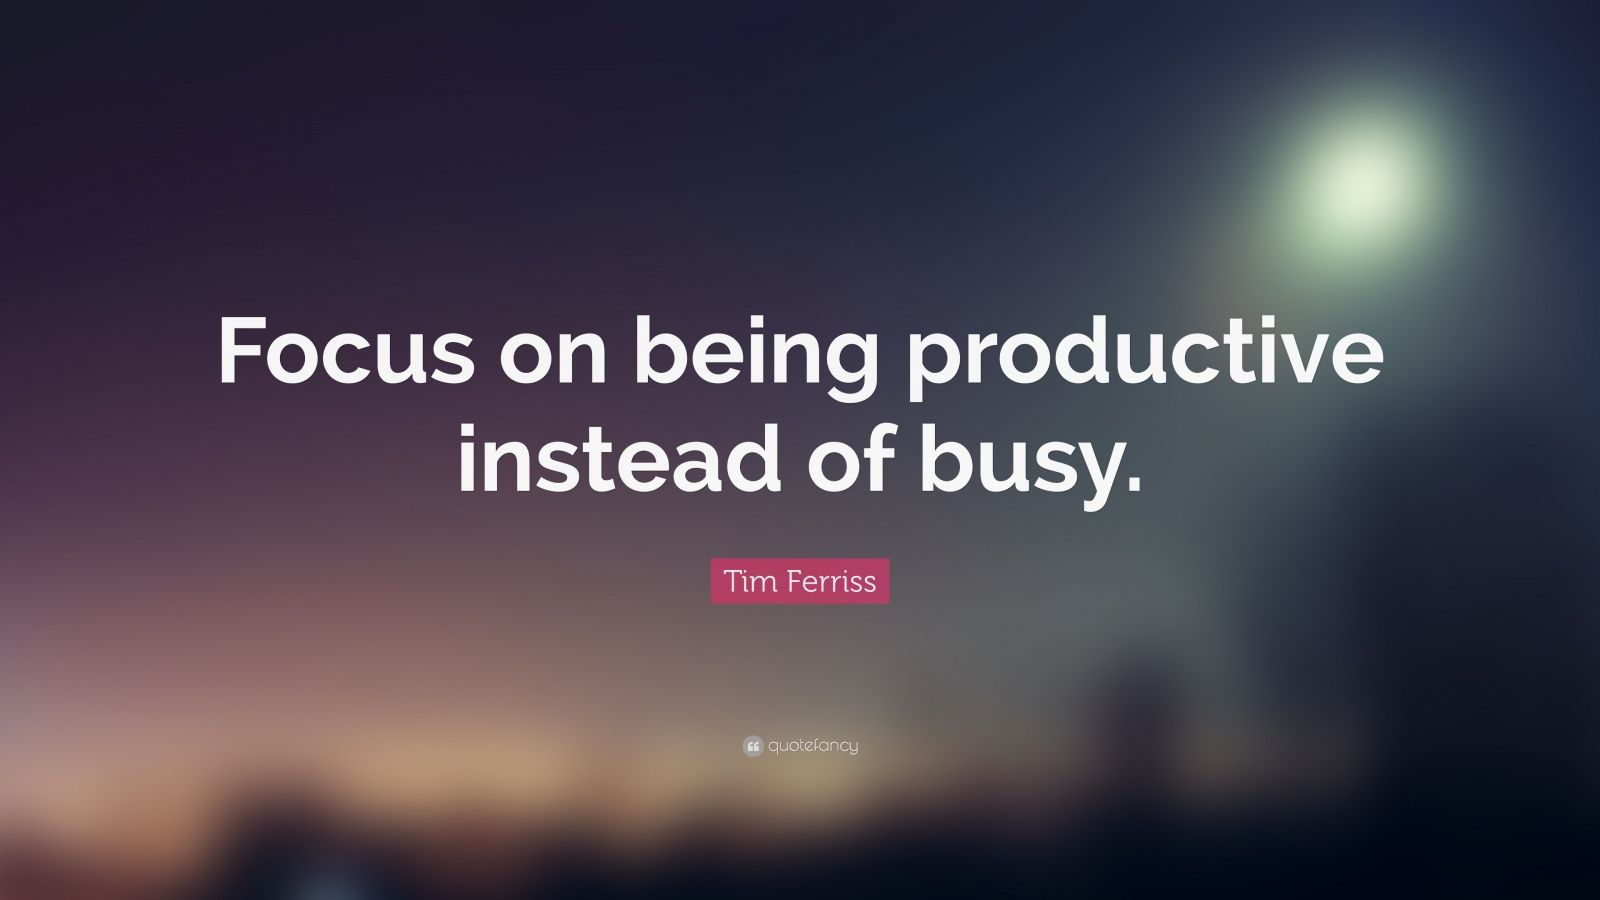 Busy Wallpaper With Quotes Tim Ferriss Quote Focus On Being Productive Instead Of